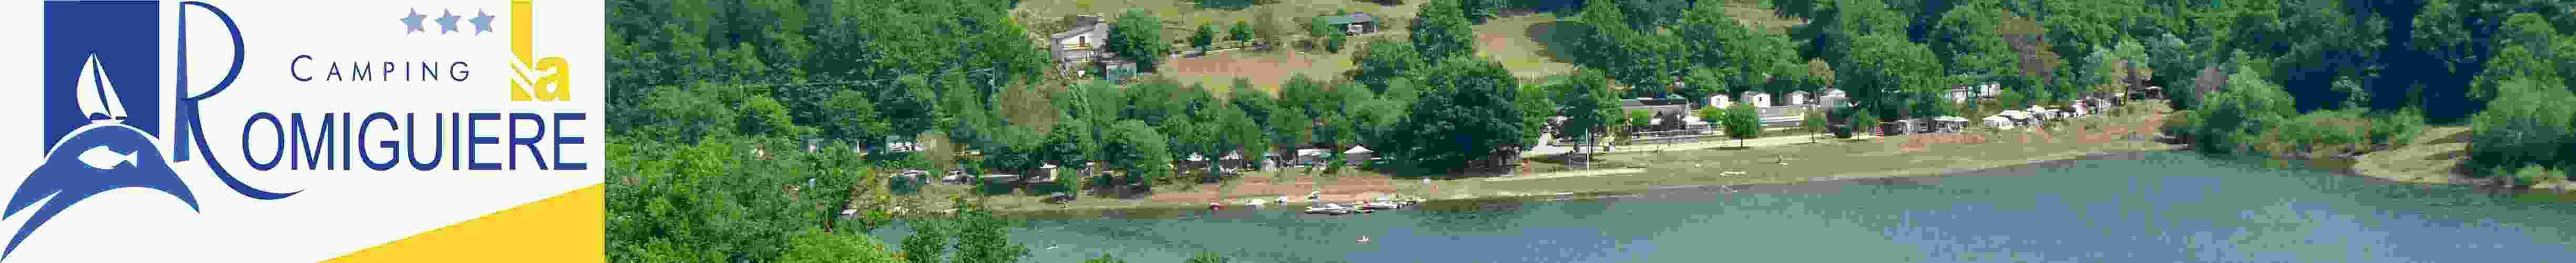 Camping La Romiguiere by the lake in Aveyron